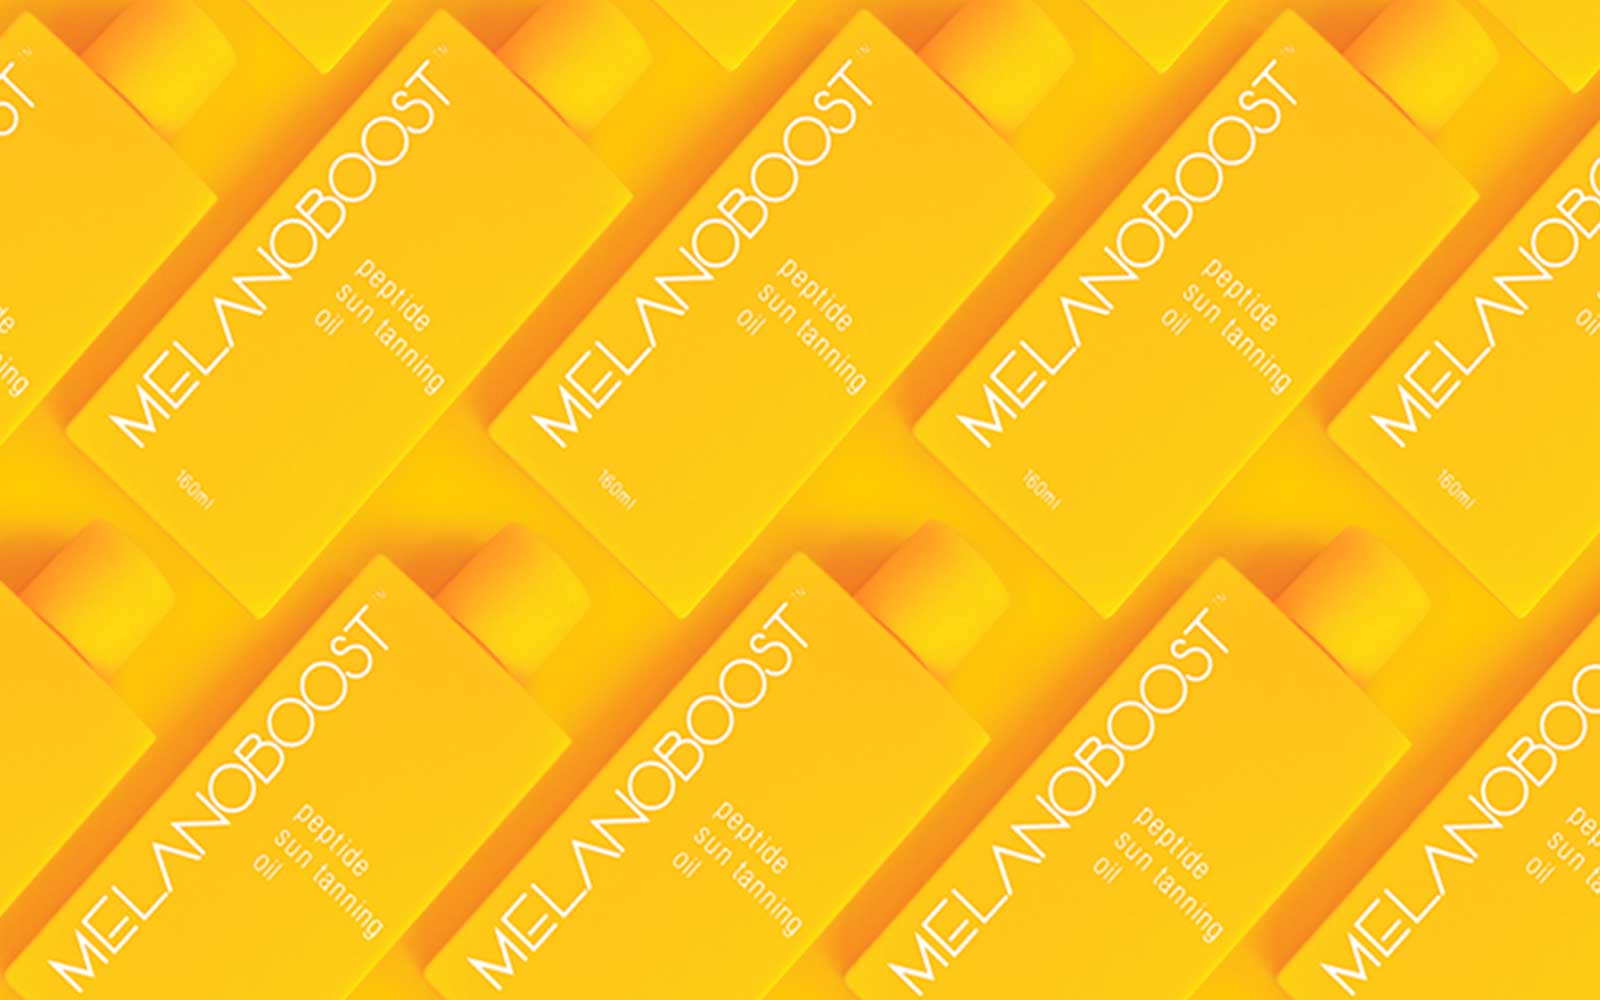 Melanoboost Peptide Sun Tanning Oil - The Sun Tan Game Changer